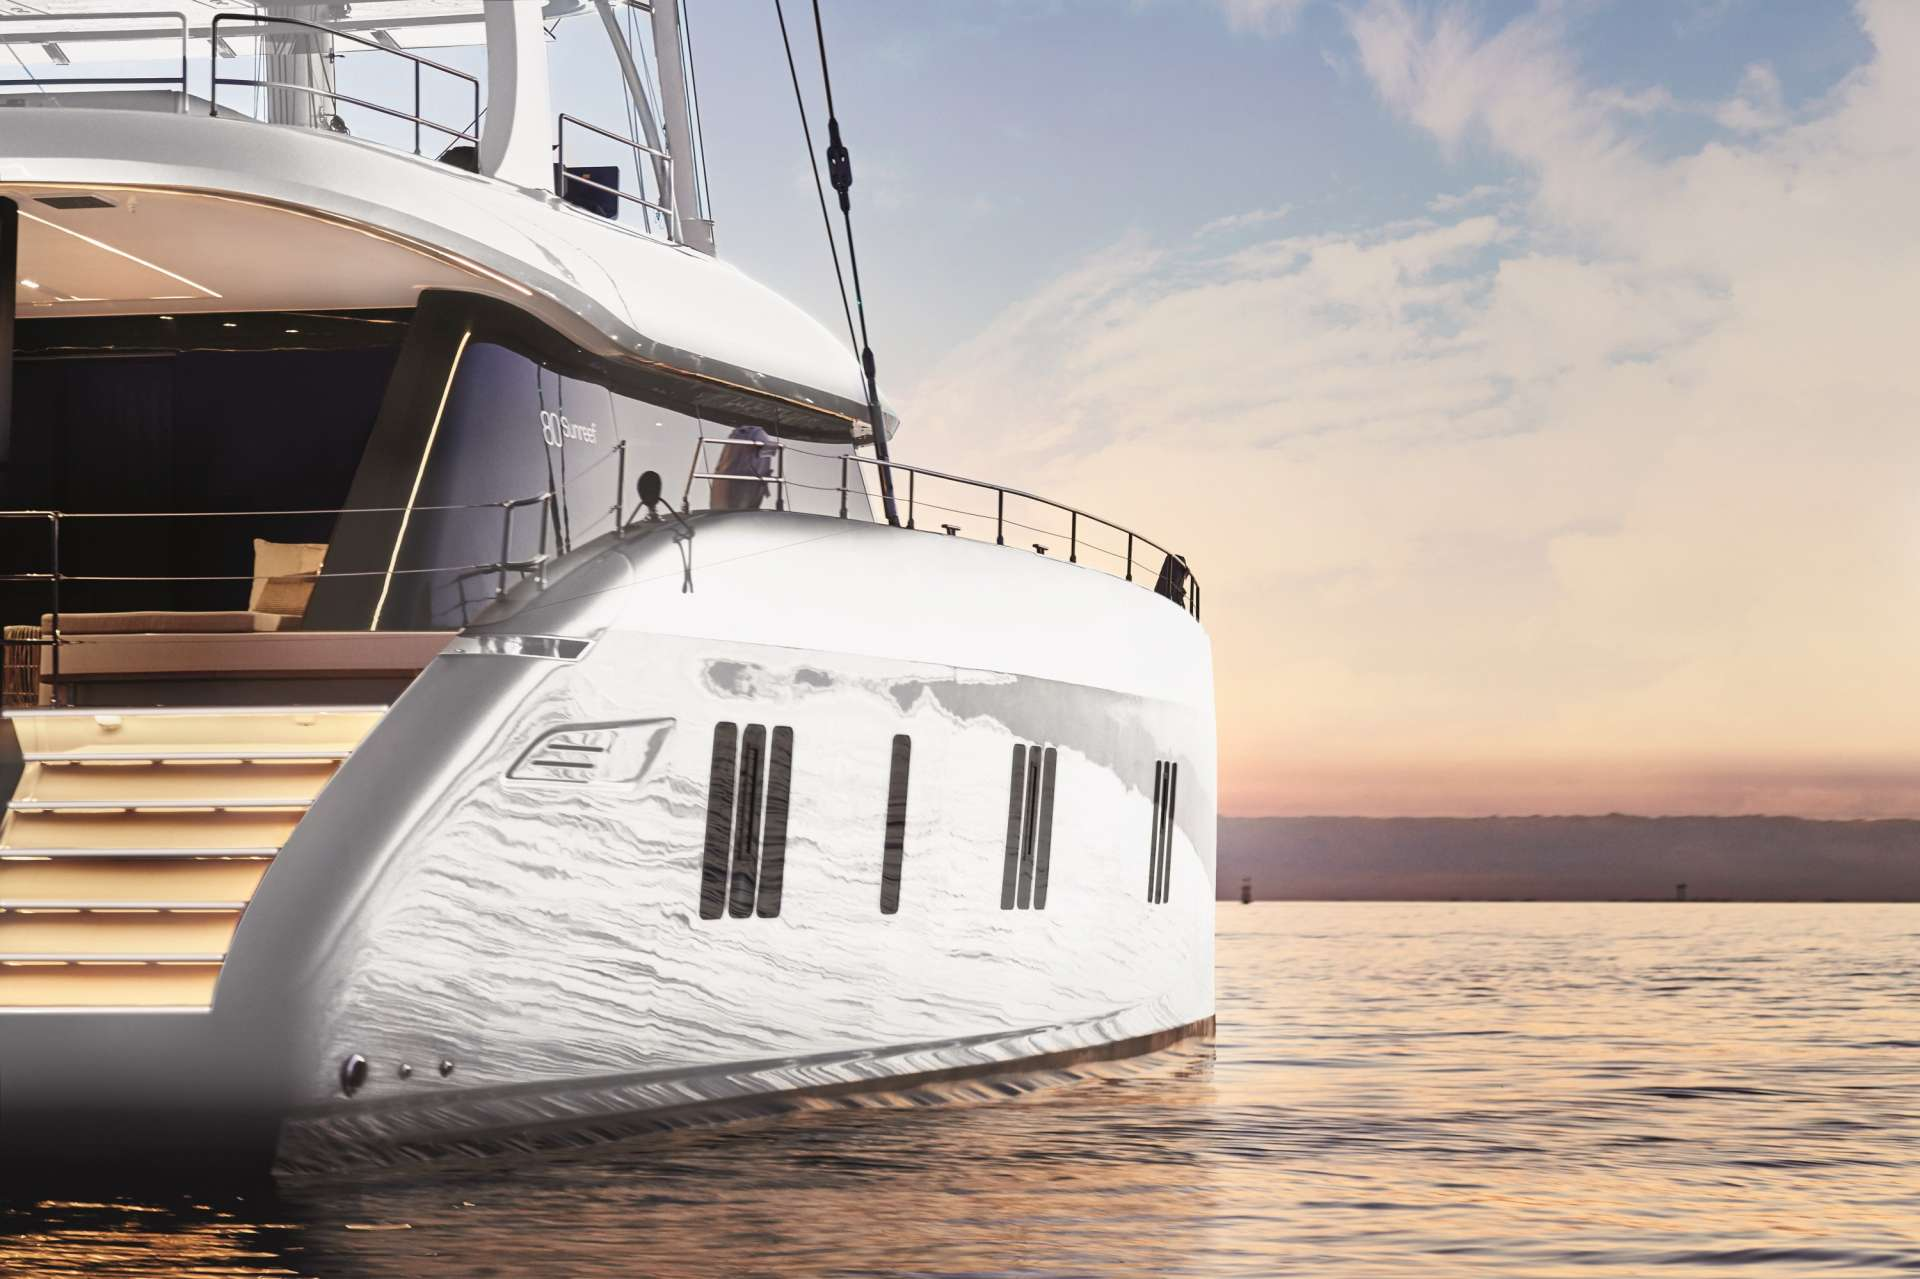 Main image of ABOVE yacht